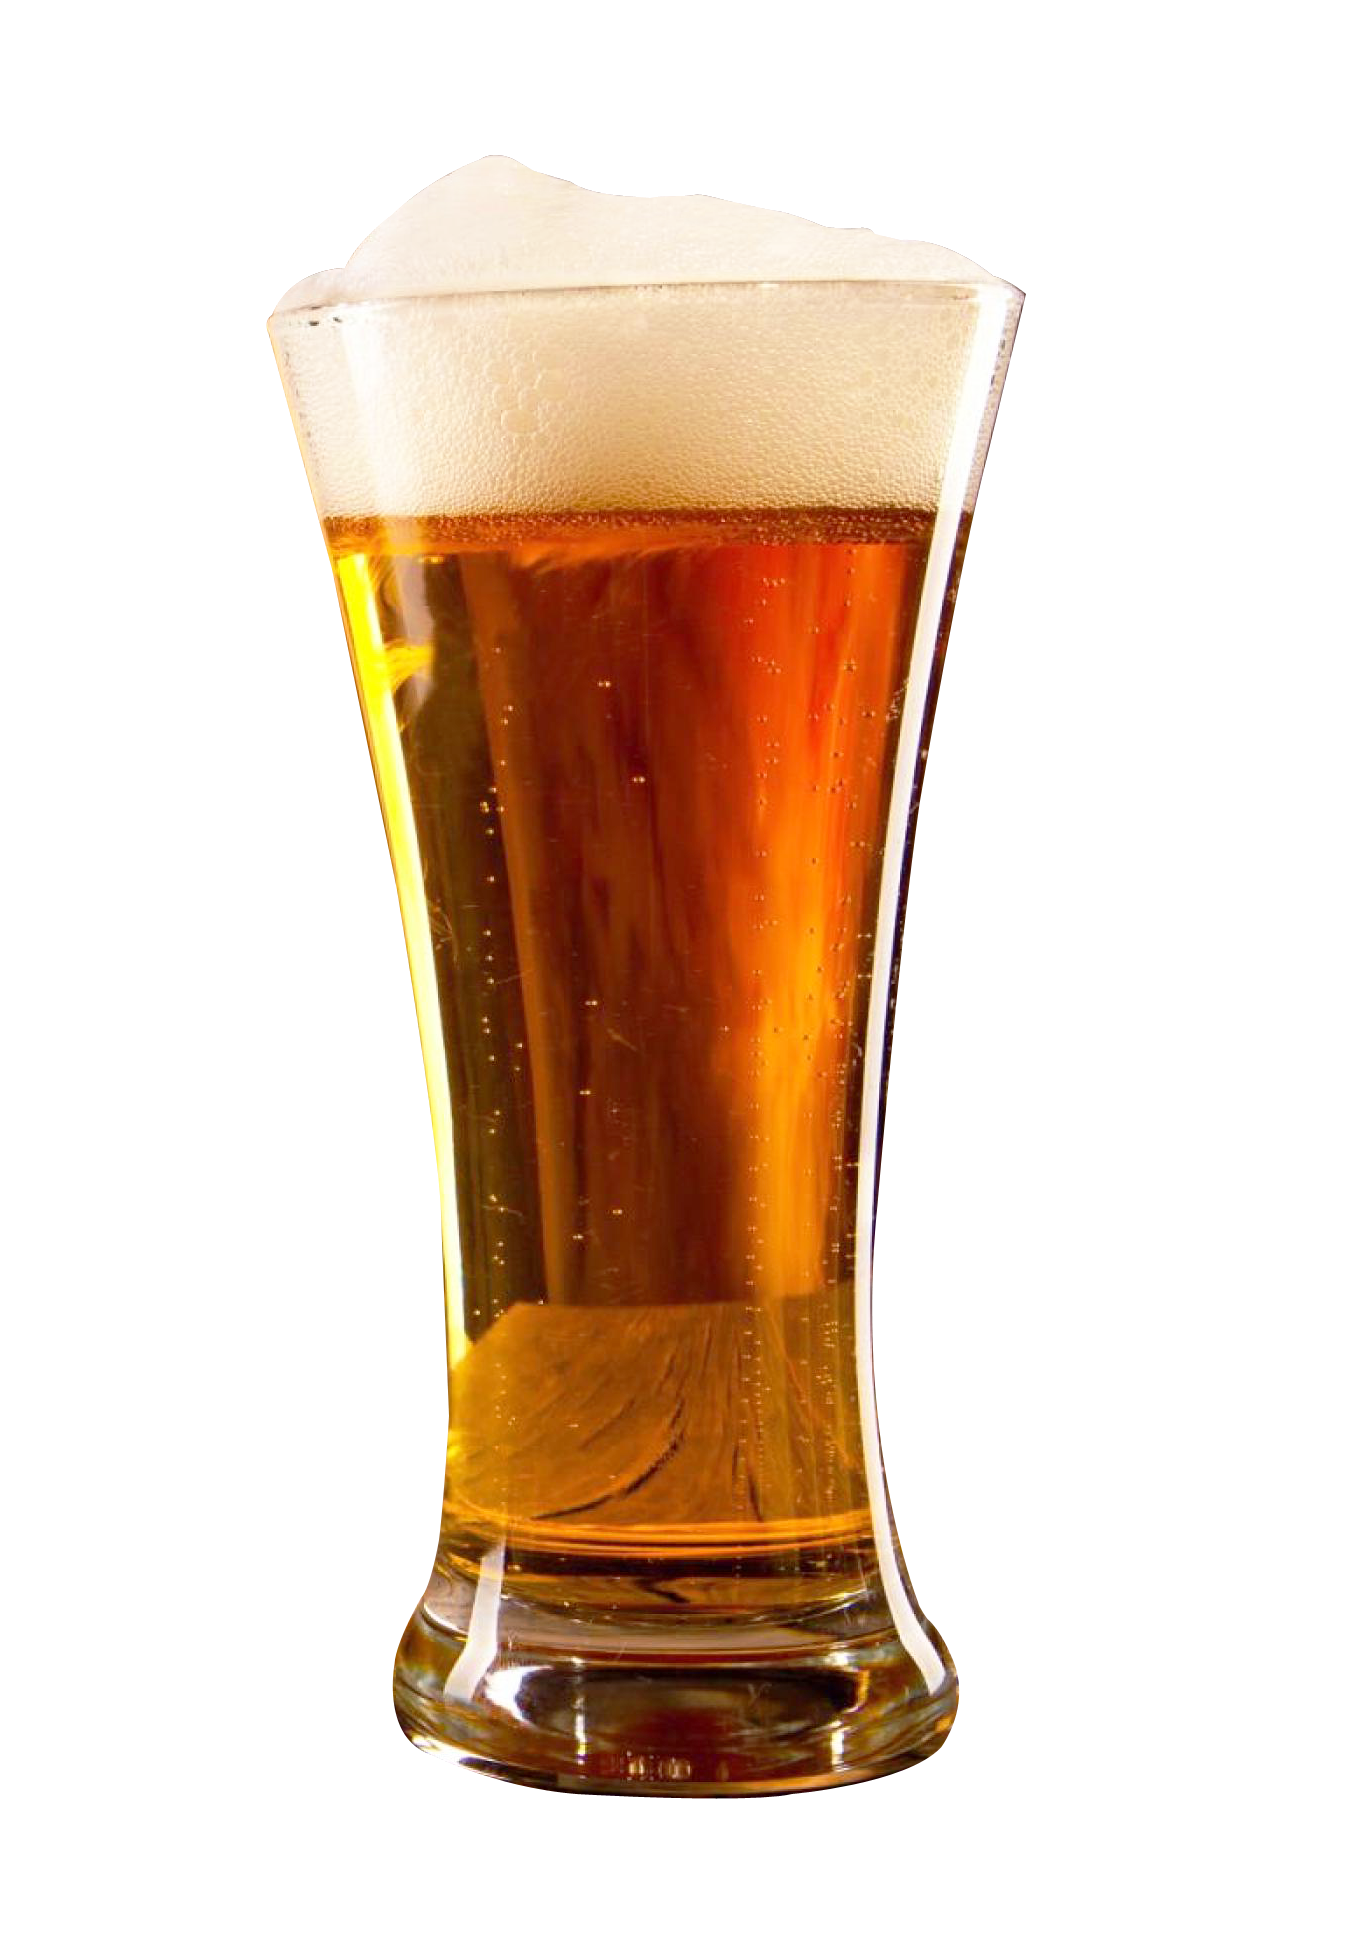 Beer cup png. Images pngpix glass image